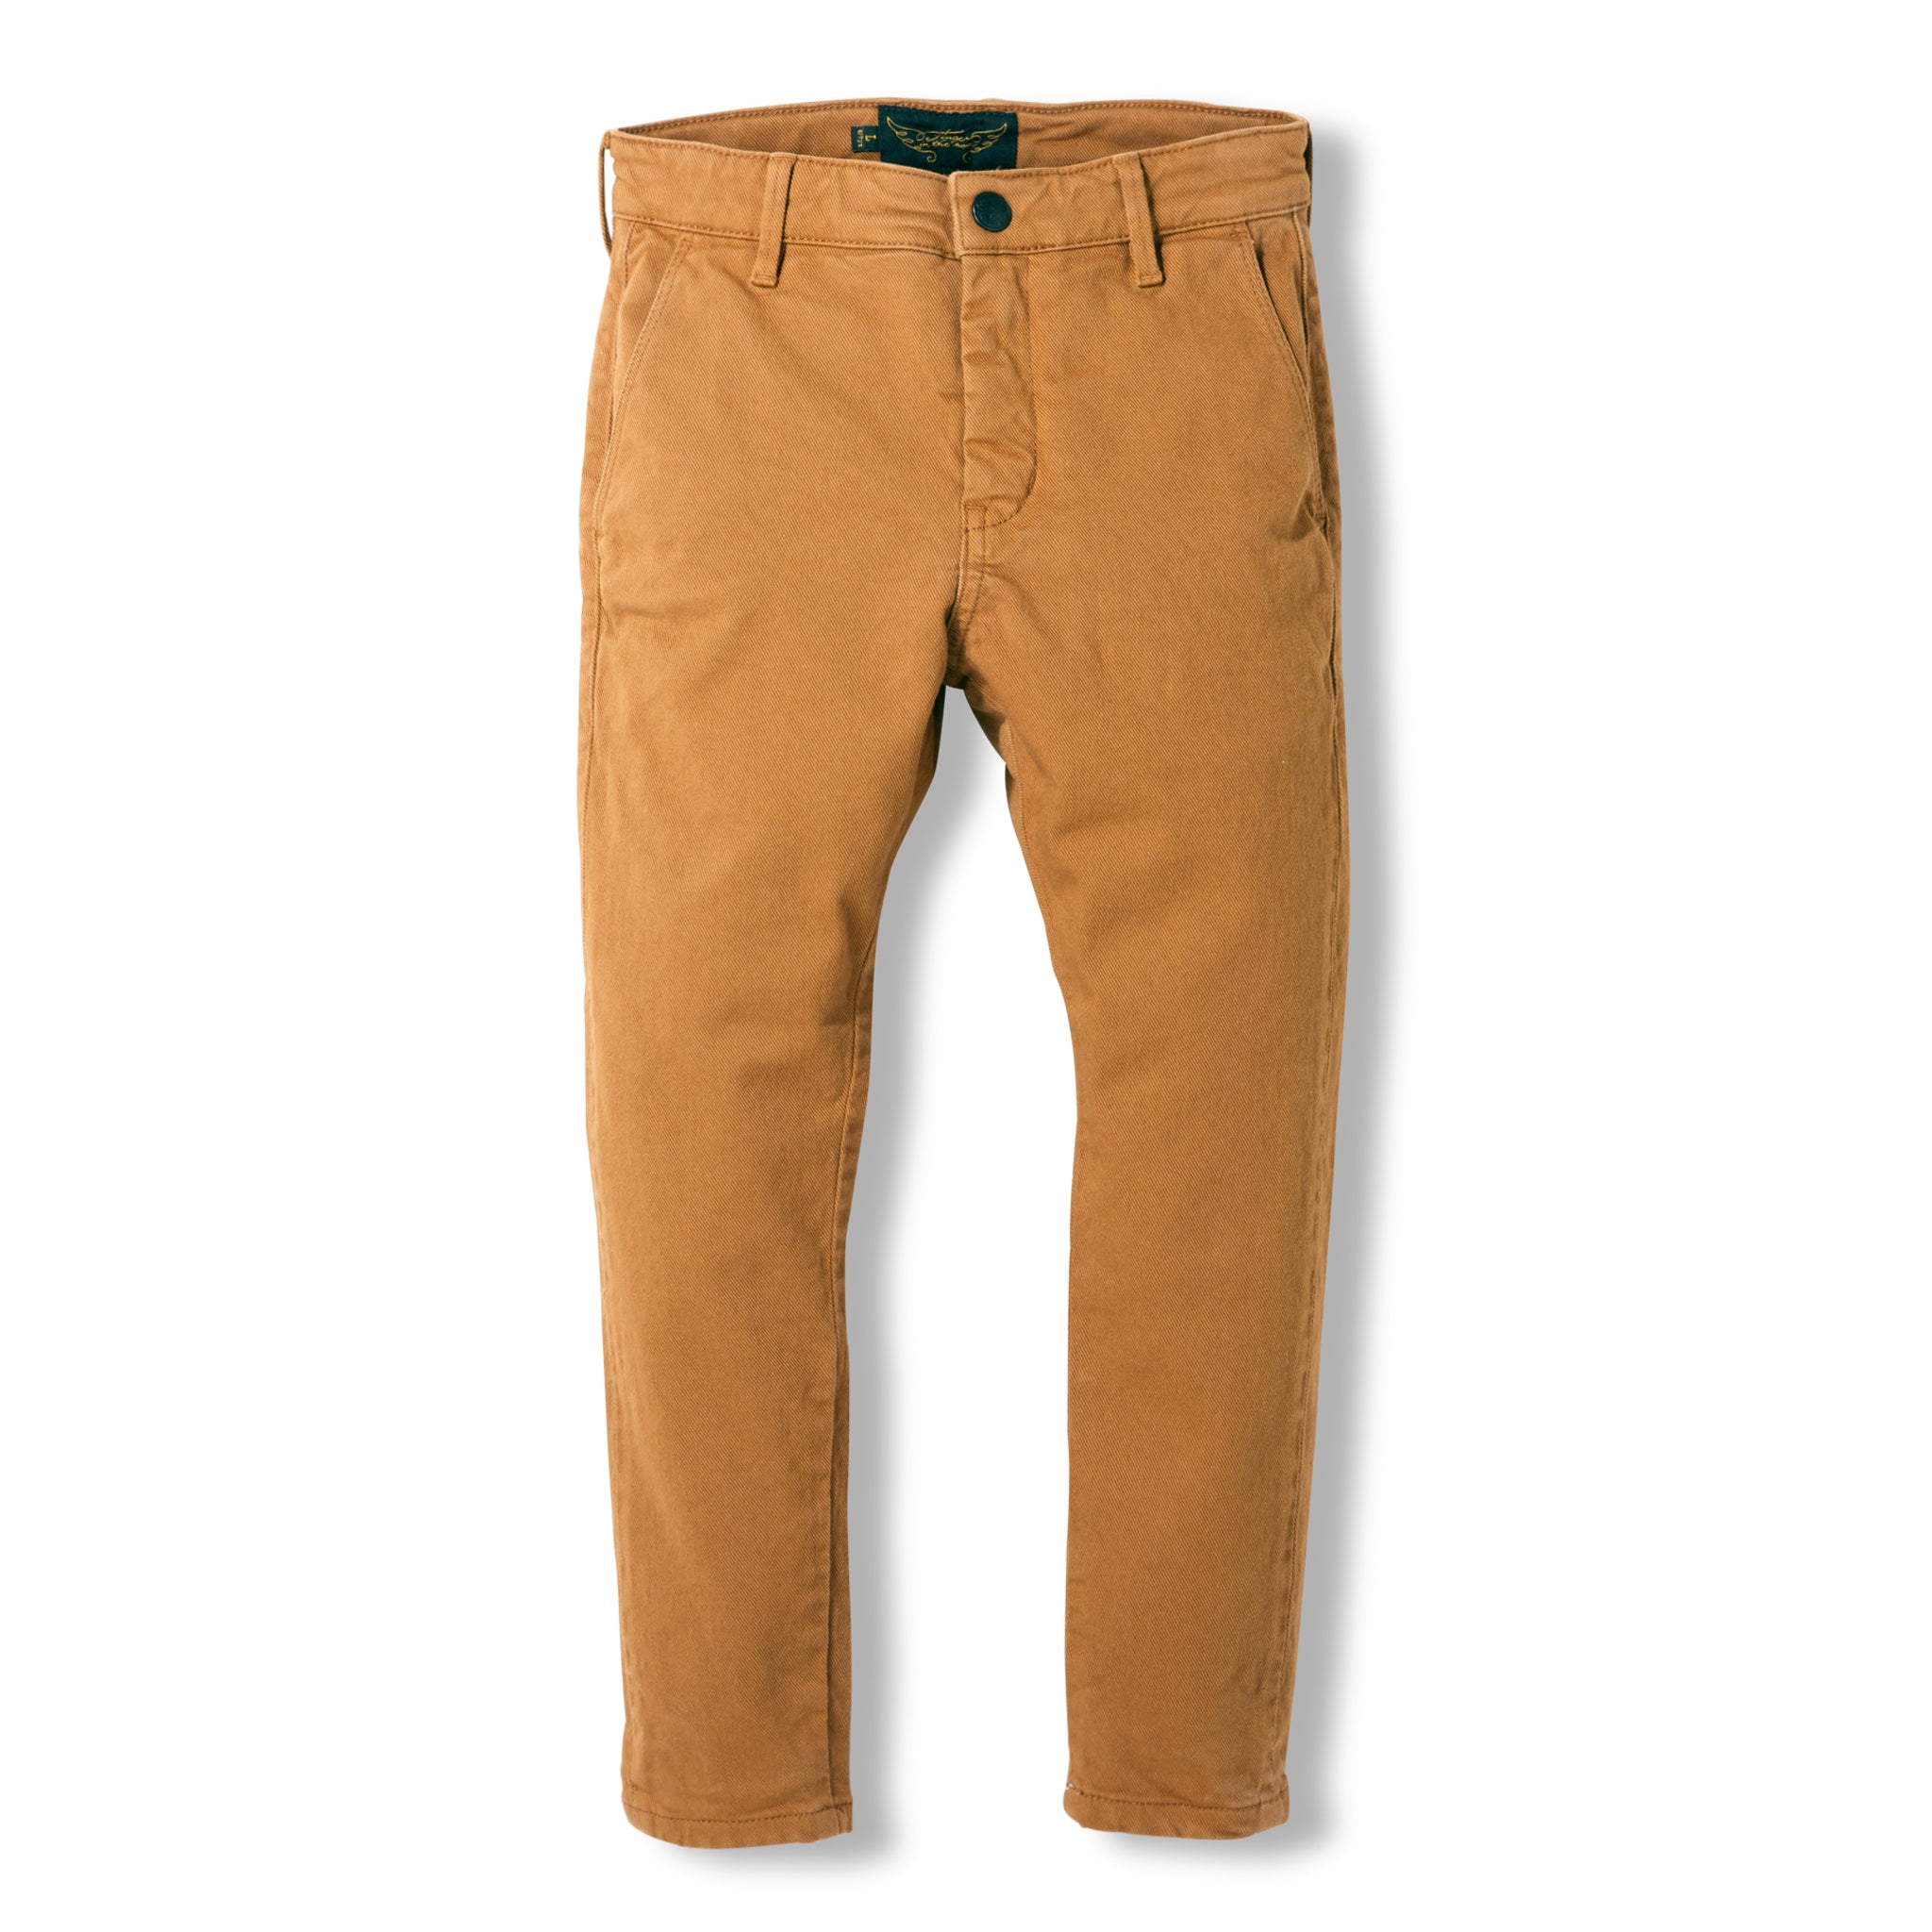 SCOTTY Caramel -  Woven Chino Fit Pants 1